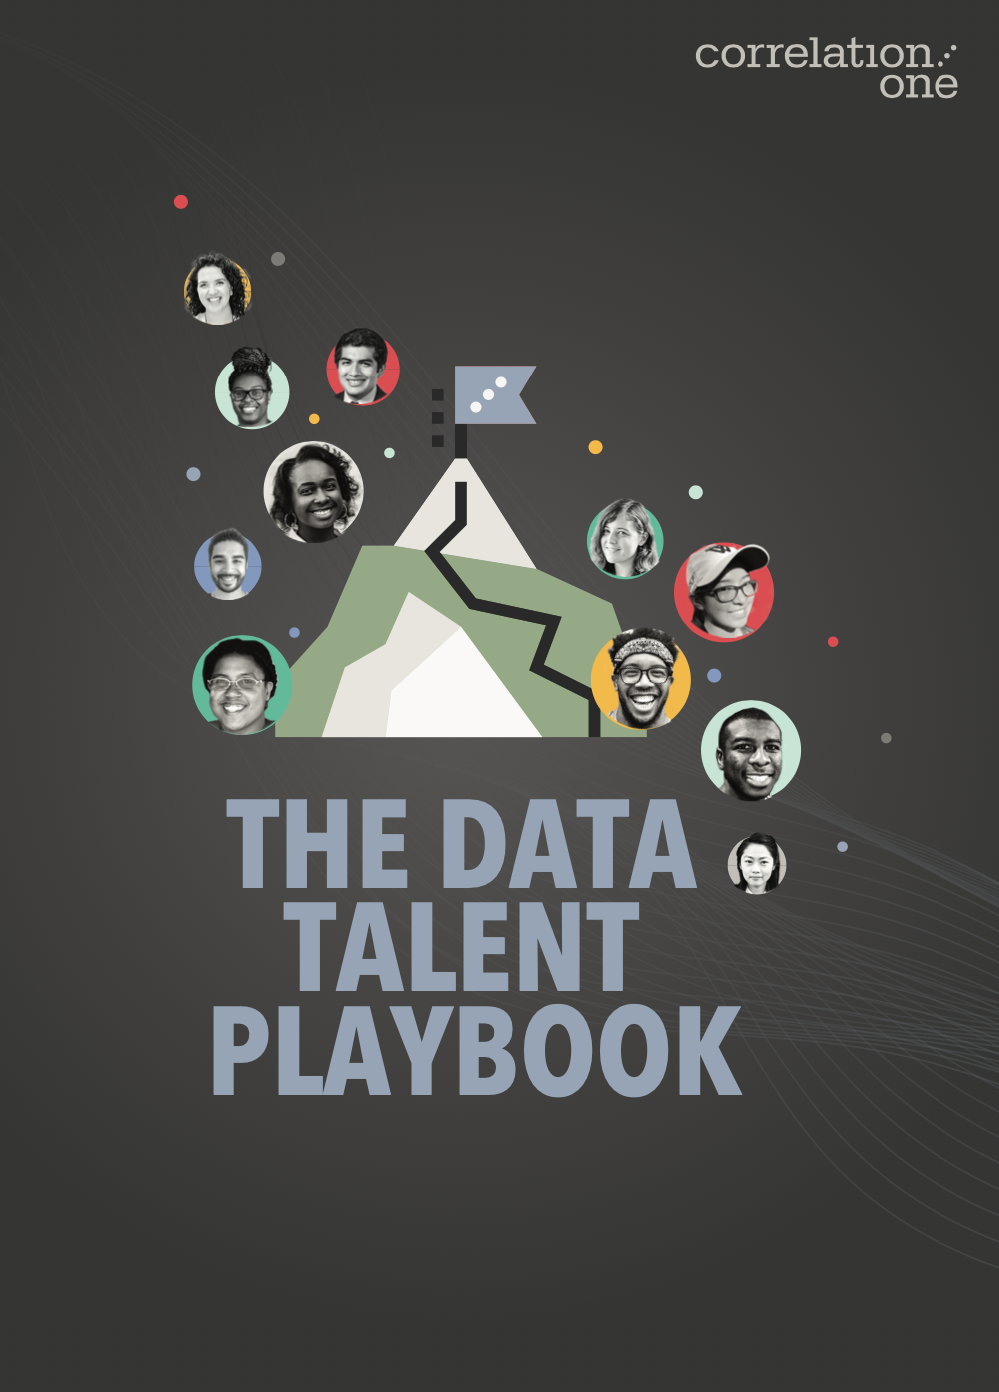 Data Science Solution for Enterprises: The Data Talent Playbook from Correlation One